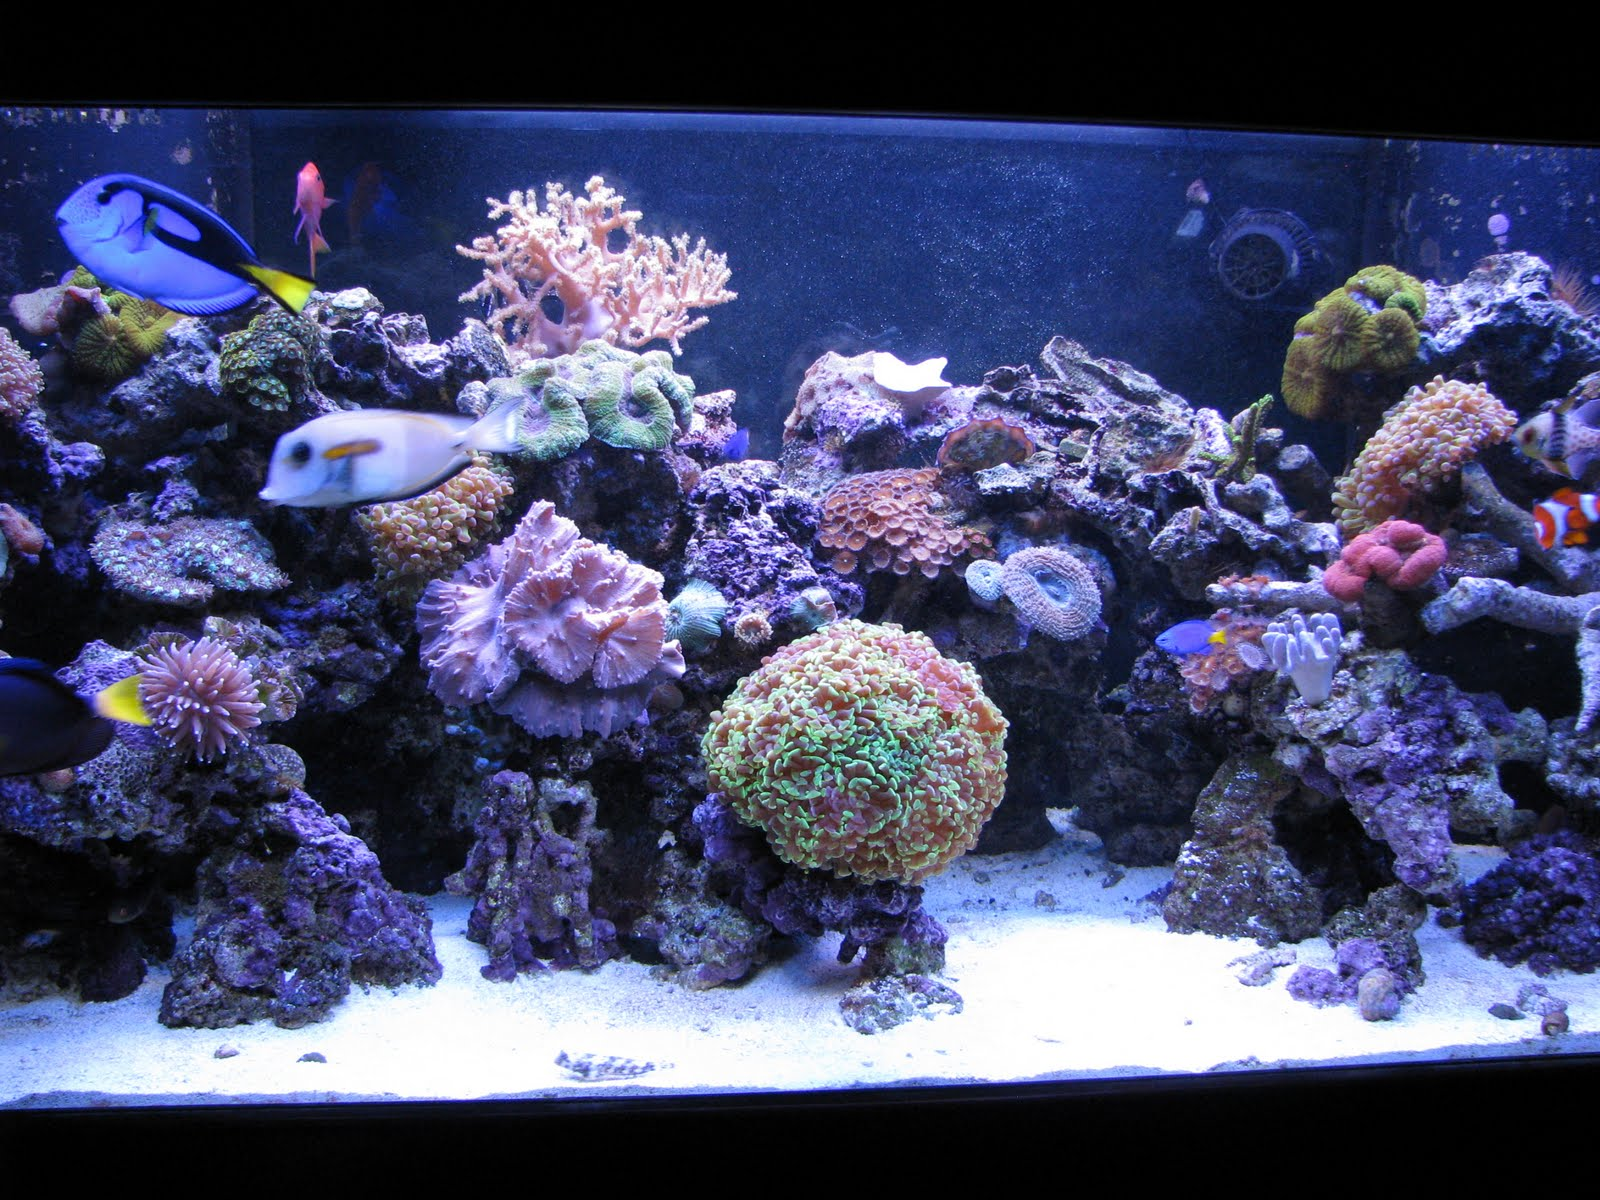 New wave aquaria my reef aquarium for Reef tank fish